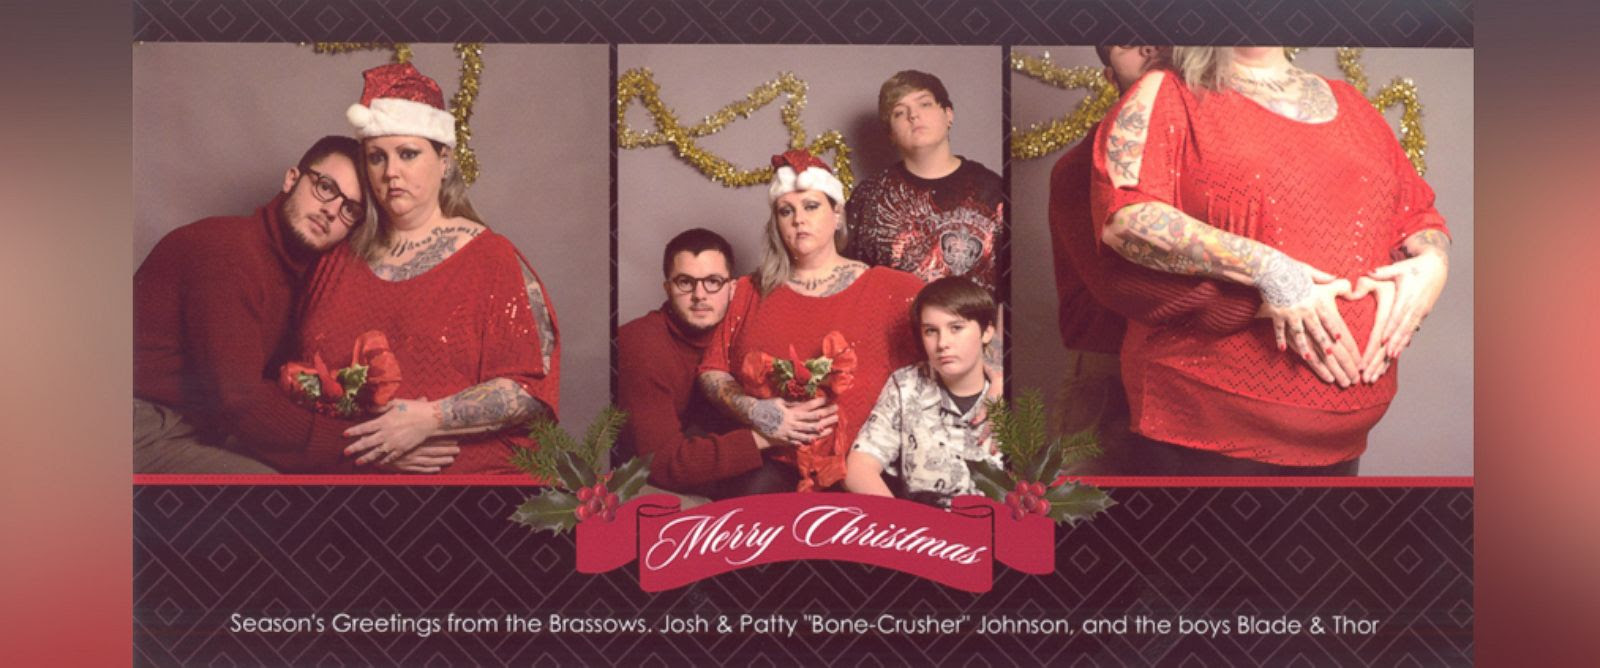 Test Blog Christmas Family Photo Shoot And Greeting Cards Magical